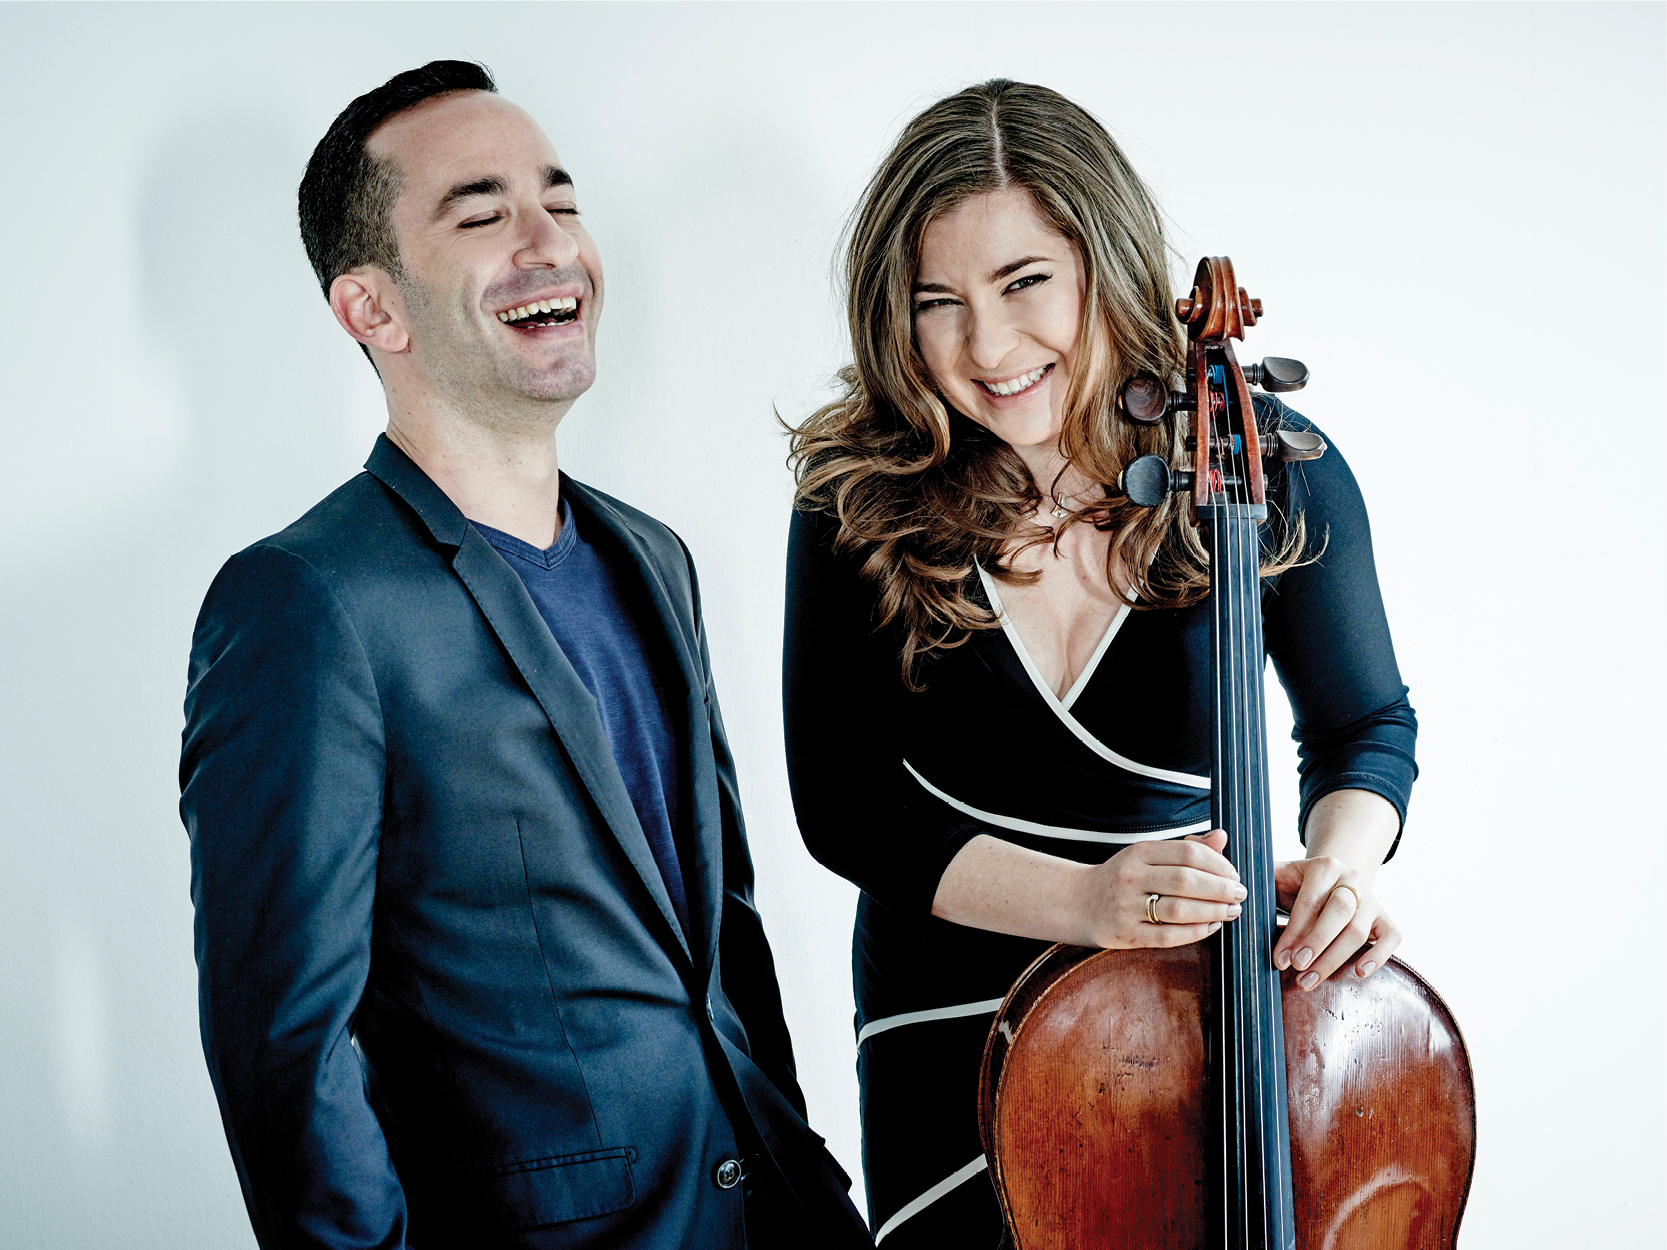 Inon Barnatan and Alisa Weilerstein laughing